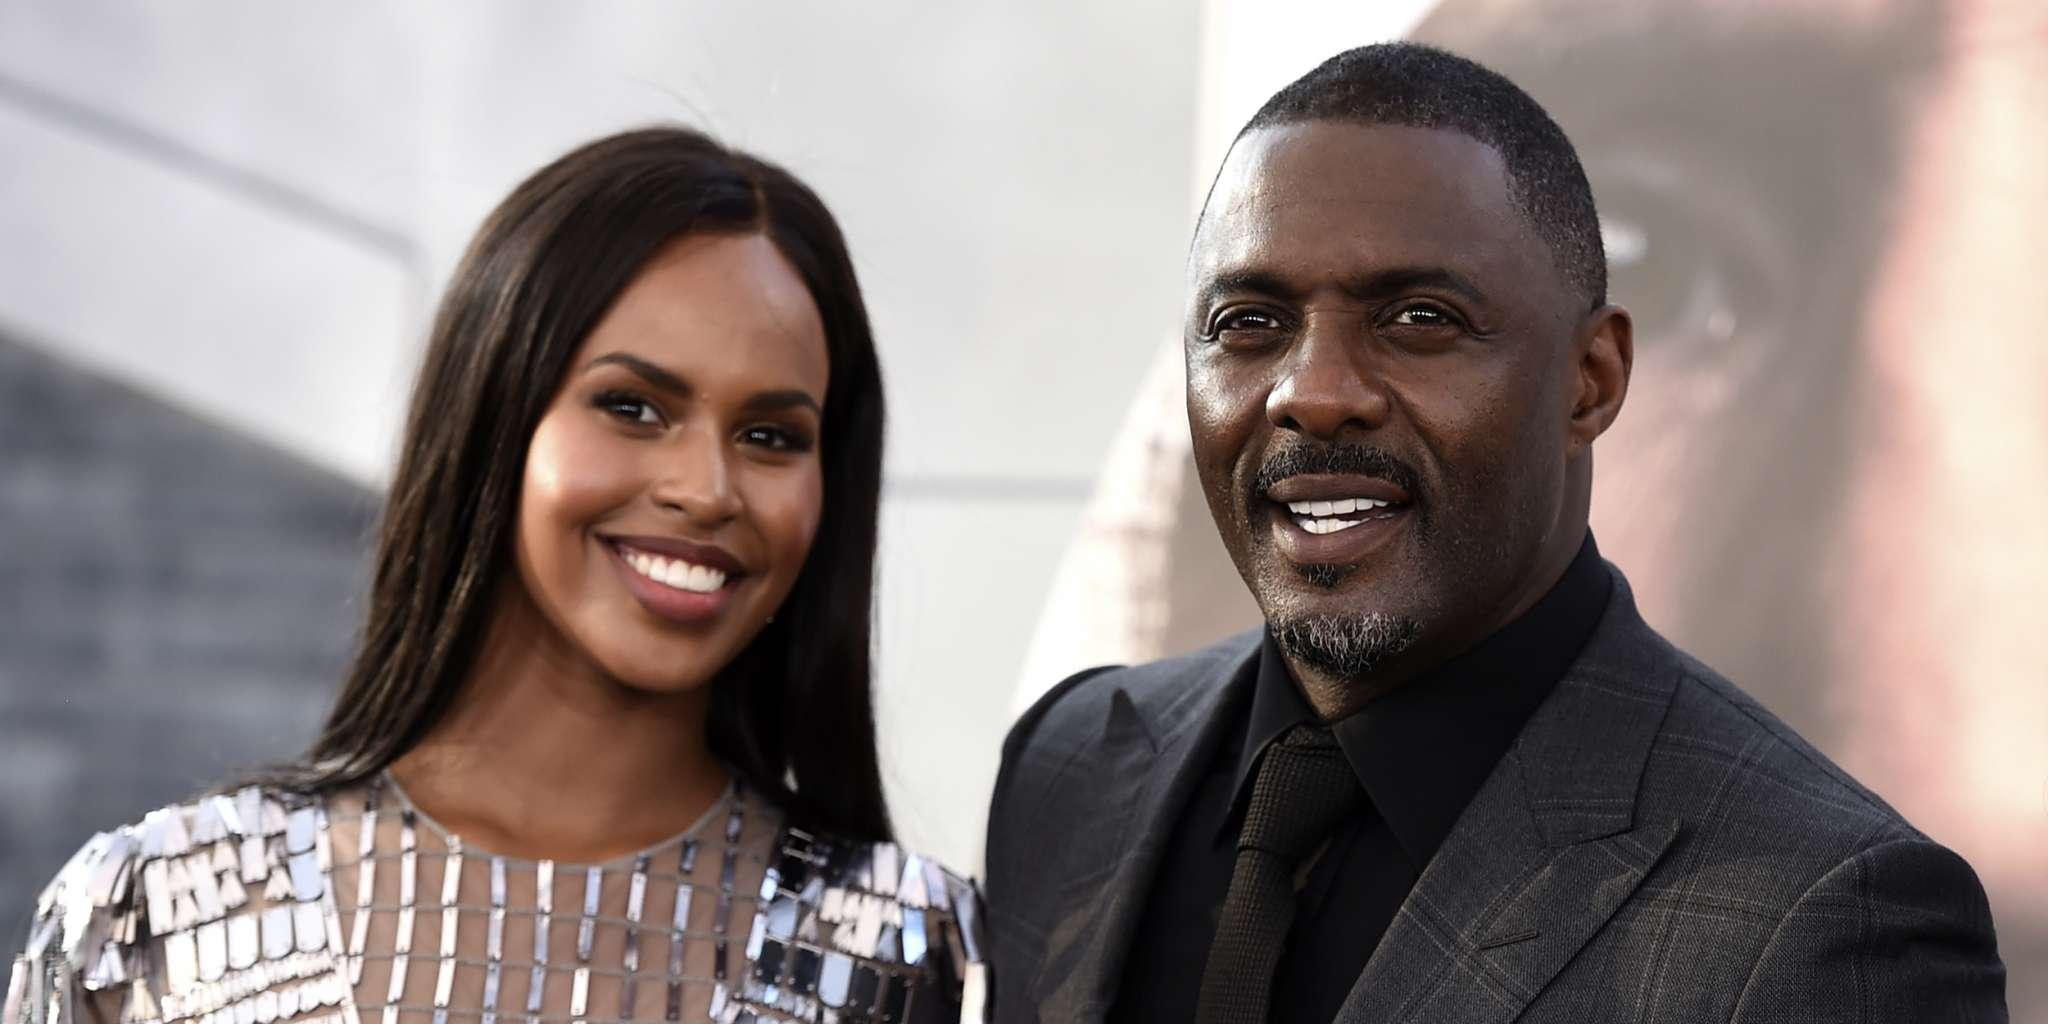 Idris Elba's Wife Opens Up About Their Love Story And Thriving Marriage!